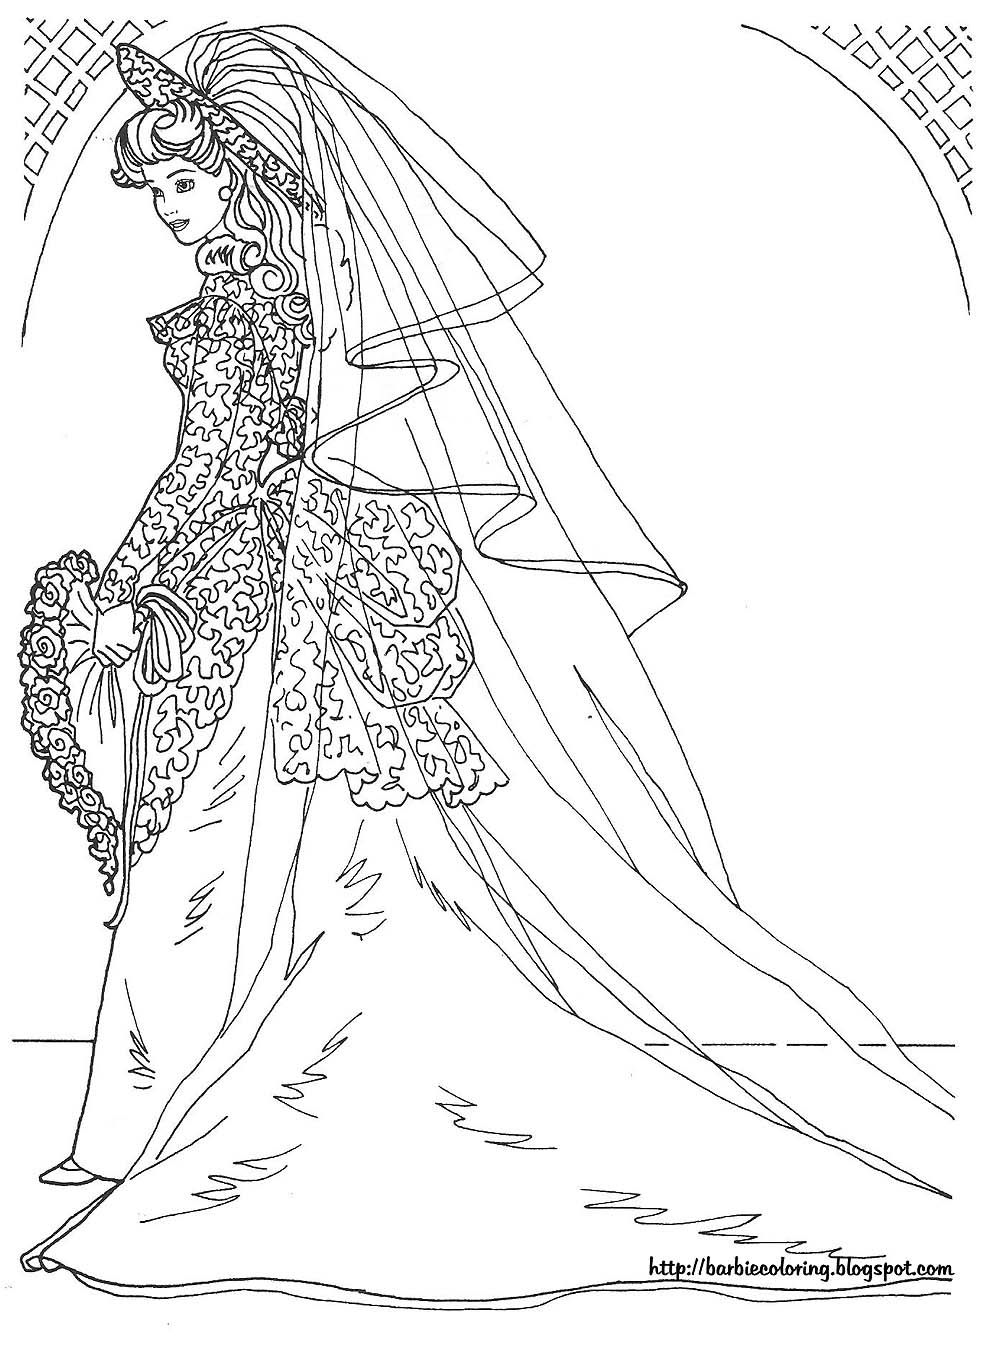 Free Coloring Pages Download Barbie Wedding Dress Of